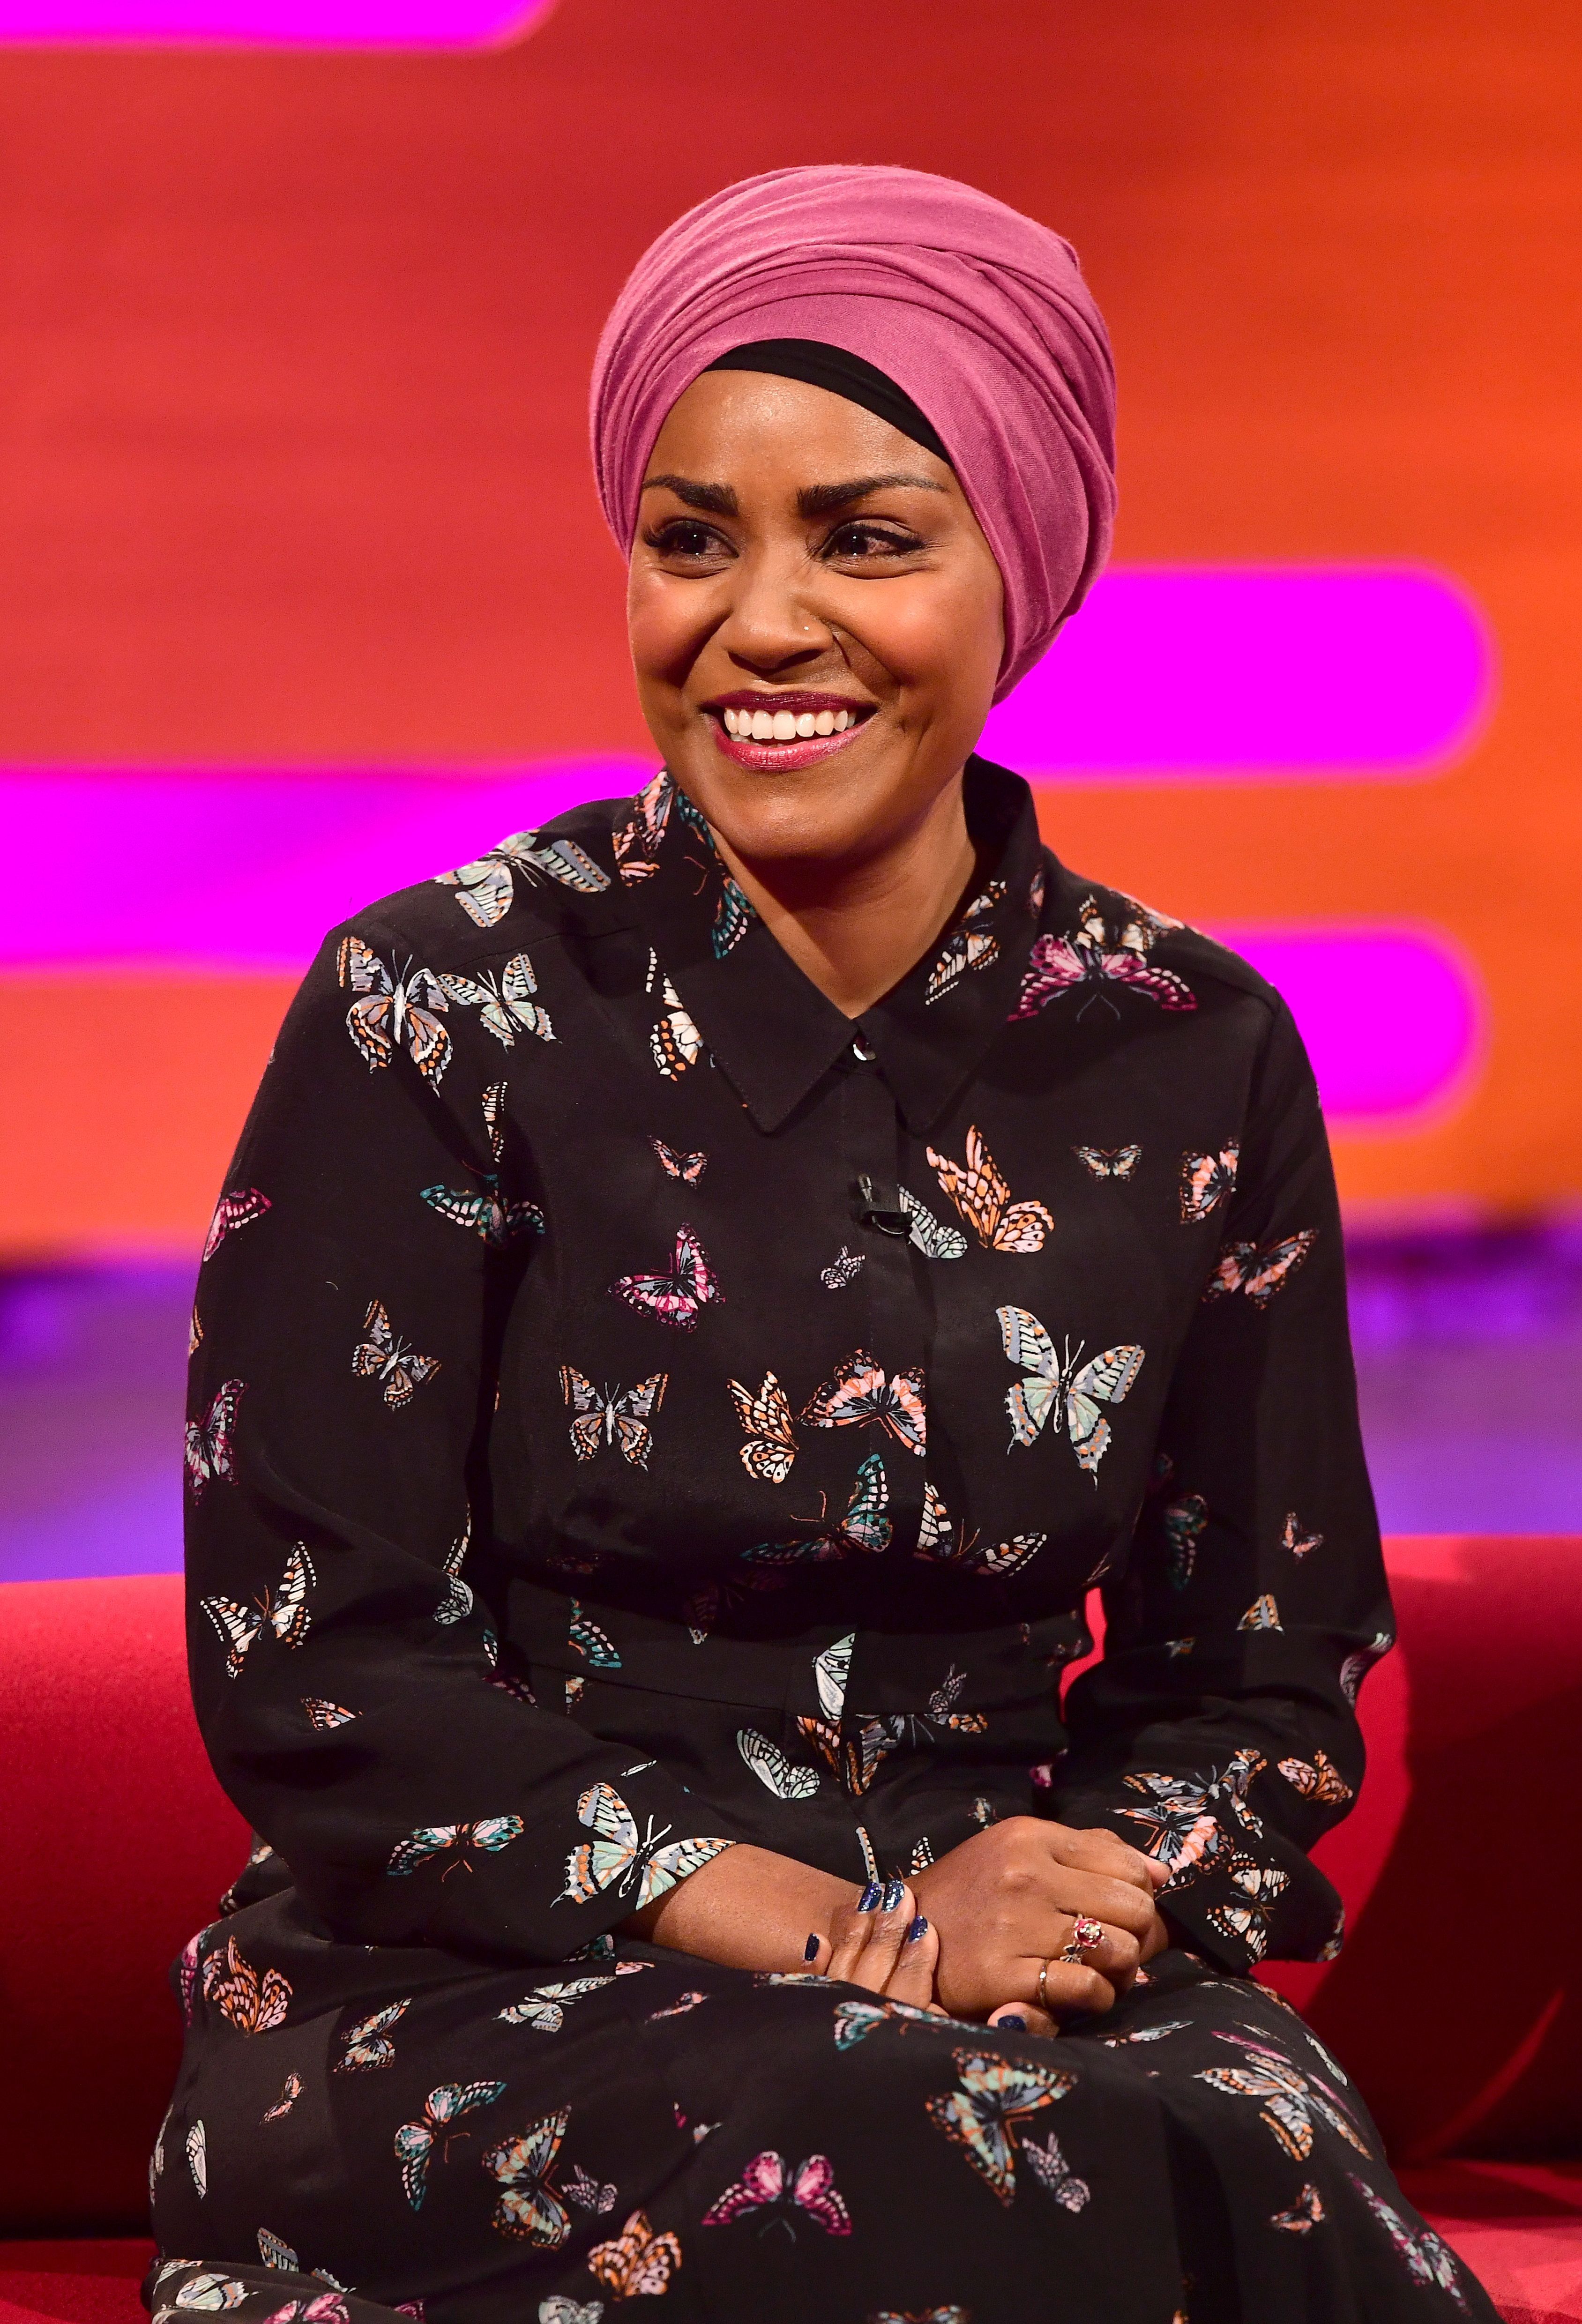 Former 'Great British Bake Off' Winner Nadiya Hussain Reveals Fears For Show On Channel